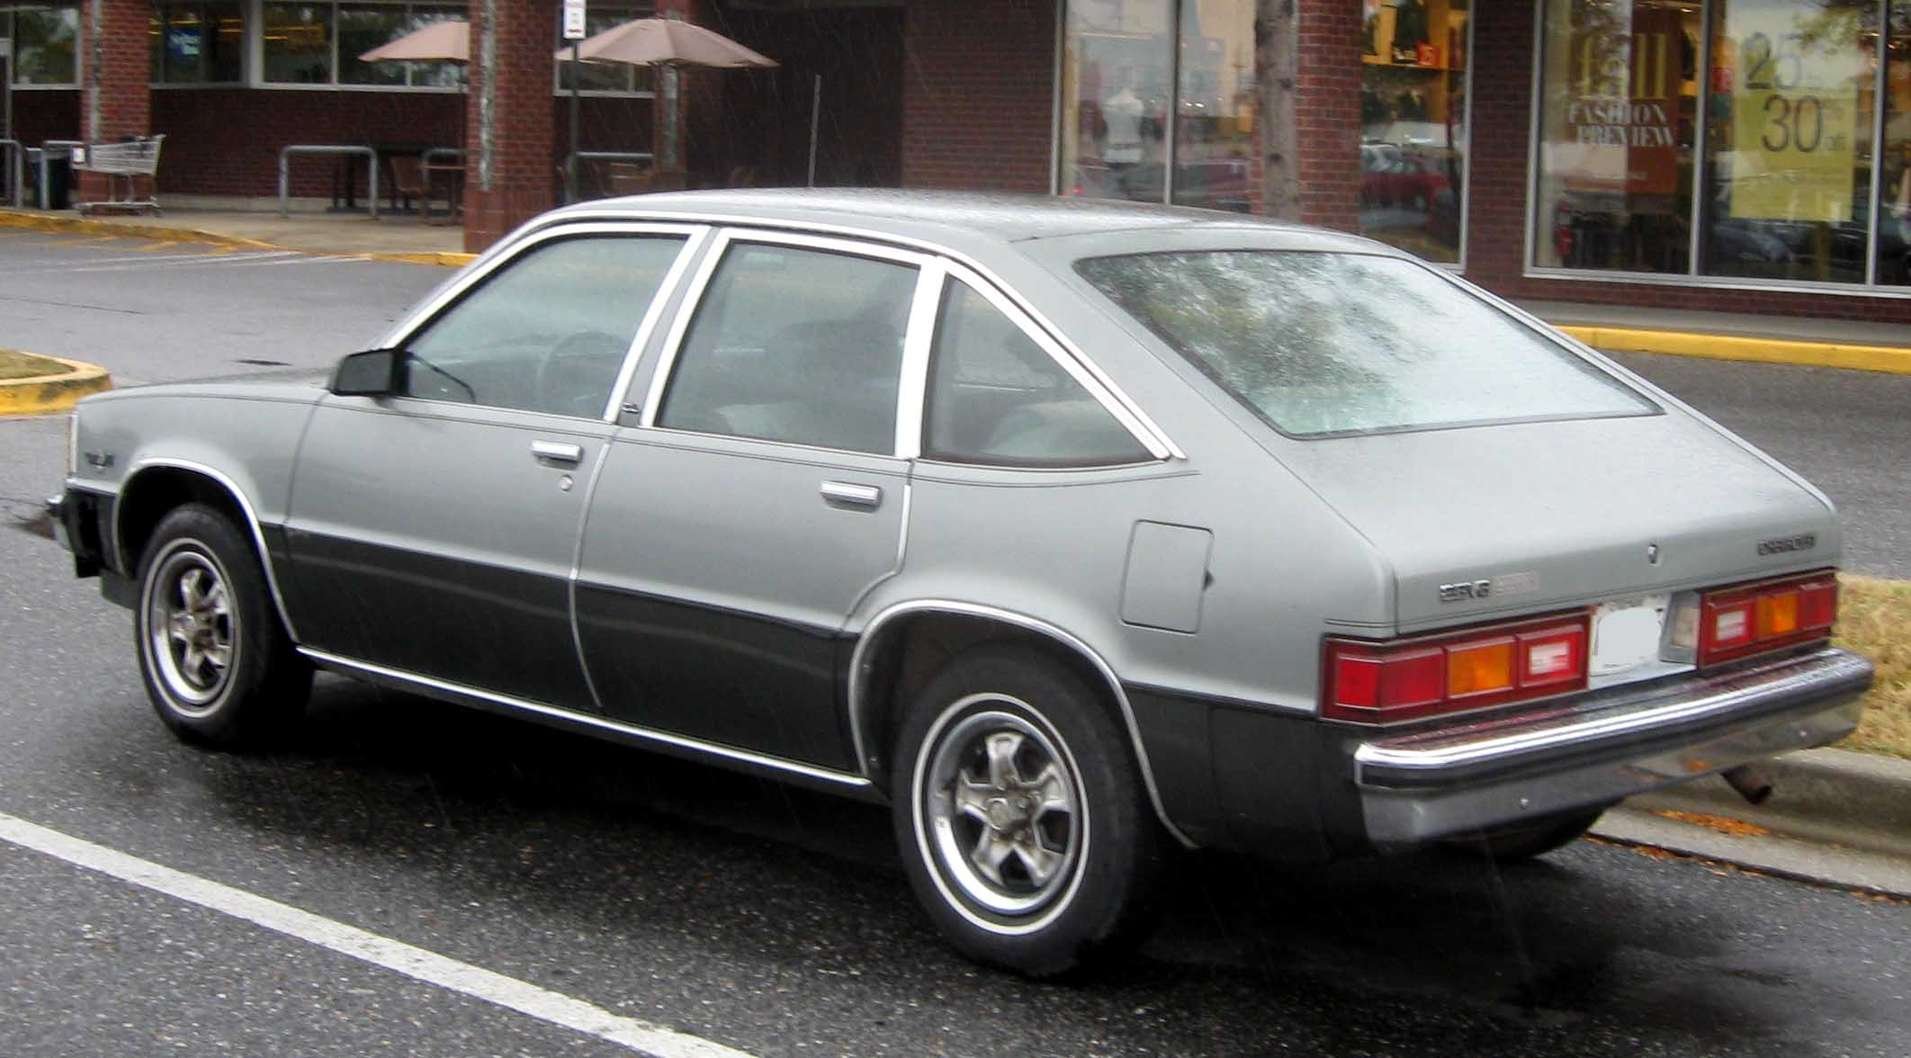 Chevrolet Citation #7108332